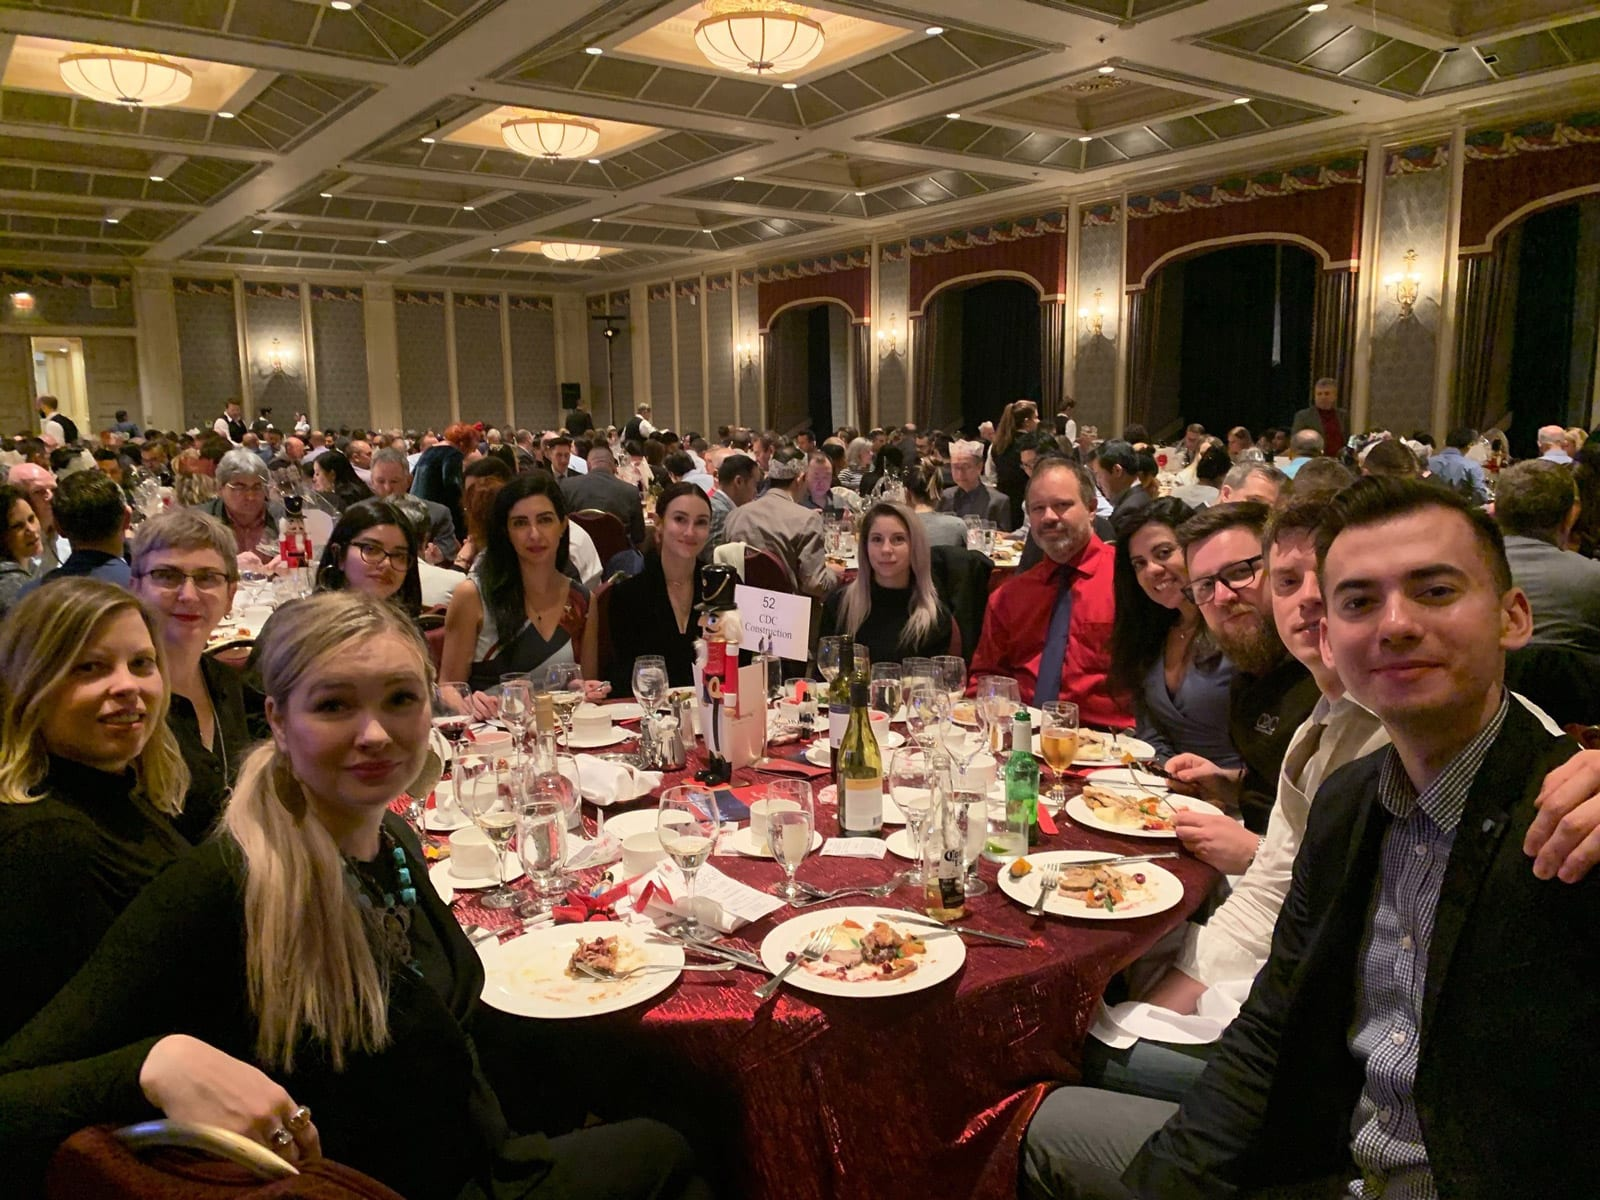 CDC Construction team at BOMA luncheon